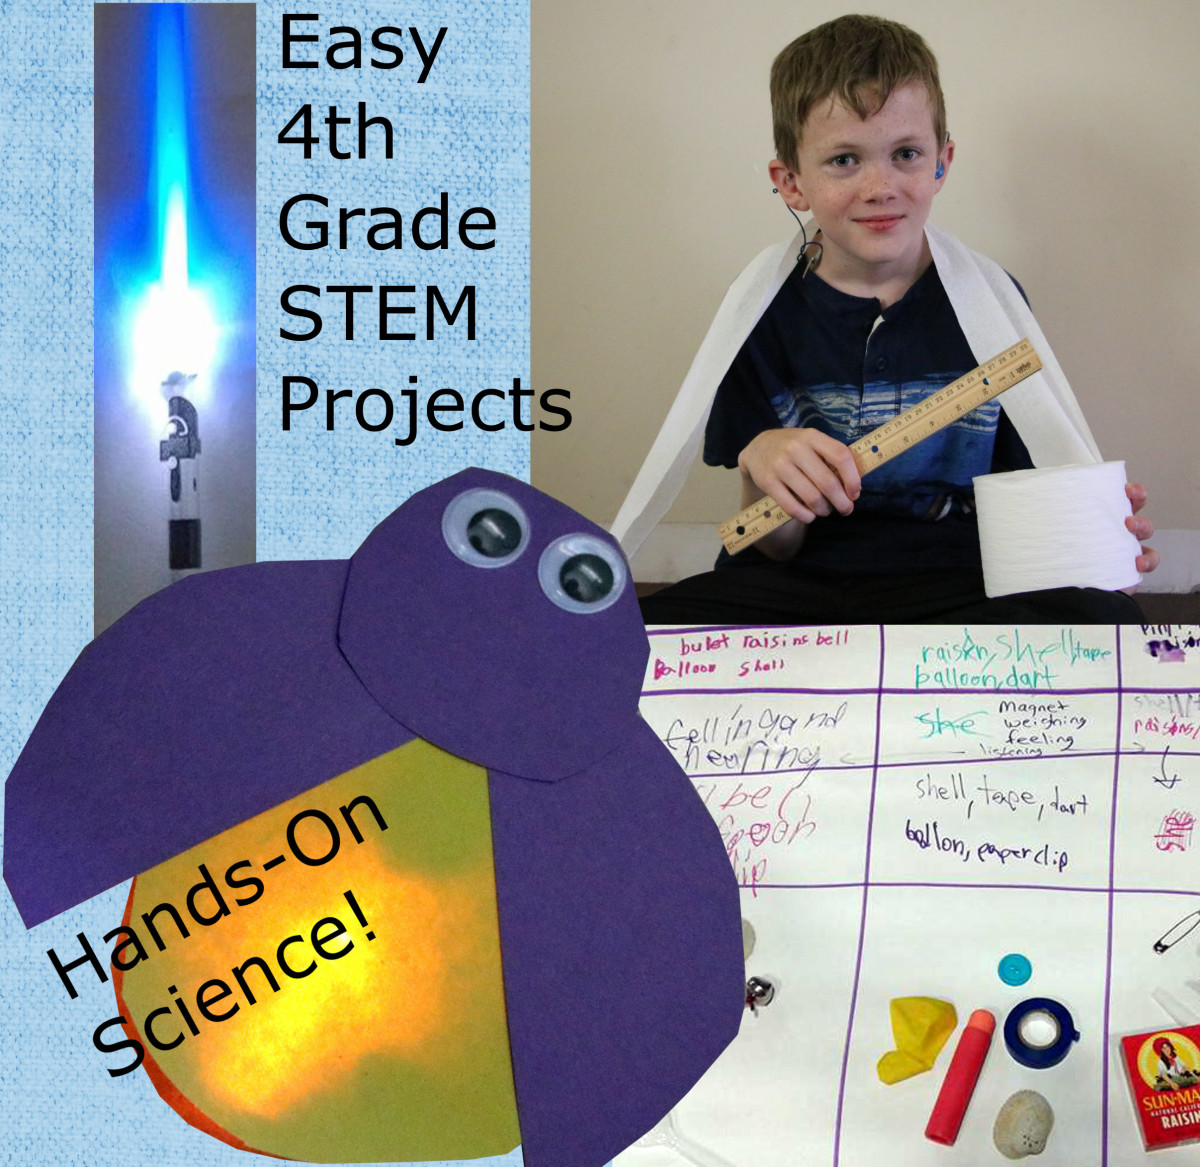 Easy Stem Activities For 4th Grade Students Wehavekids